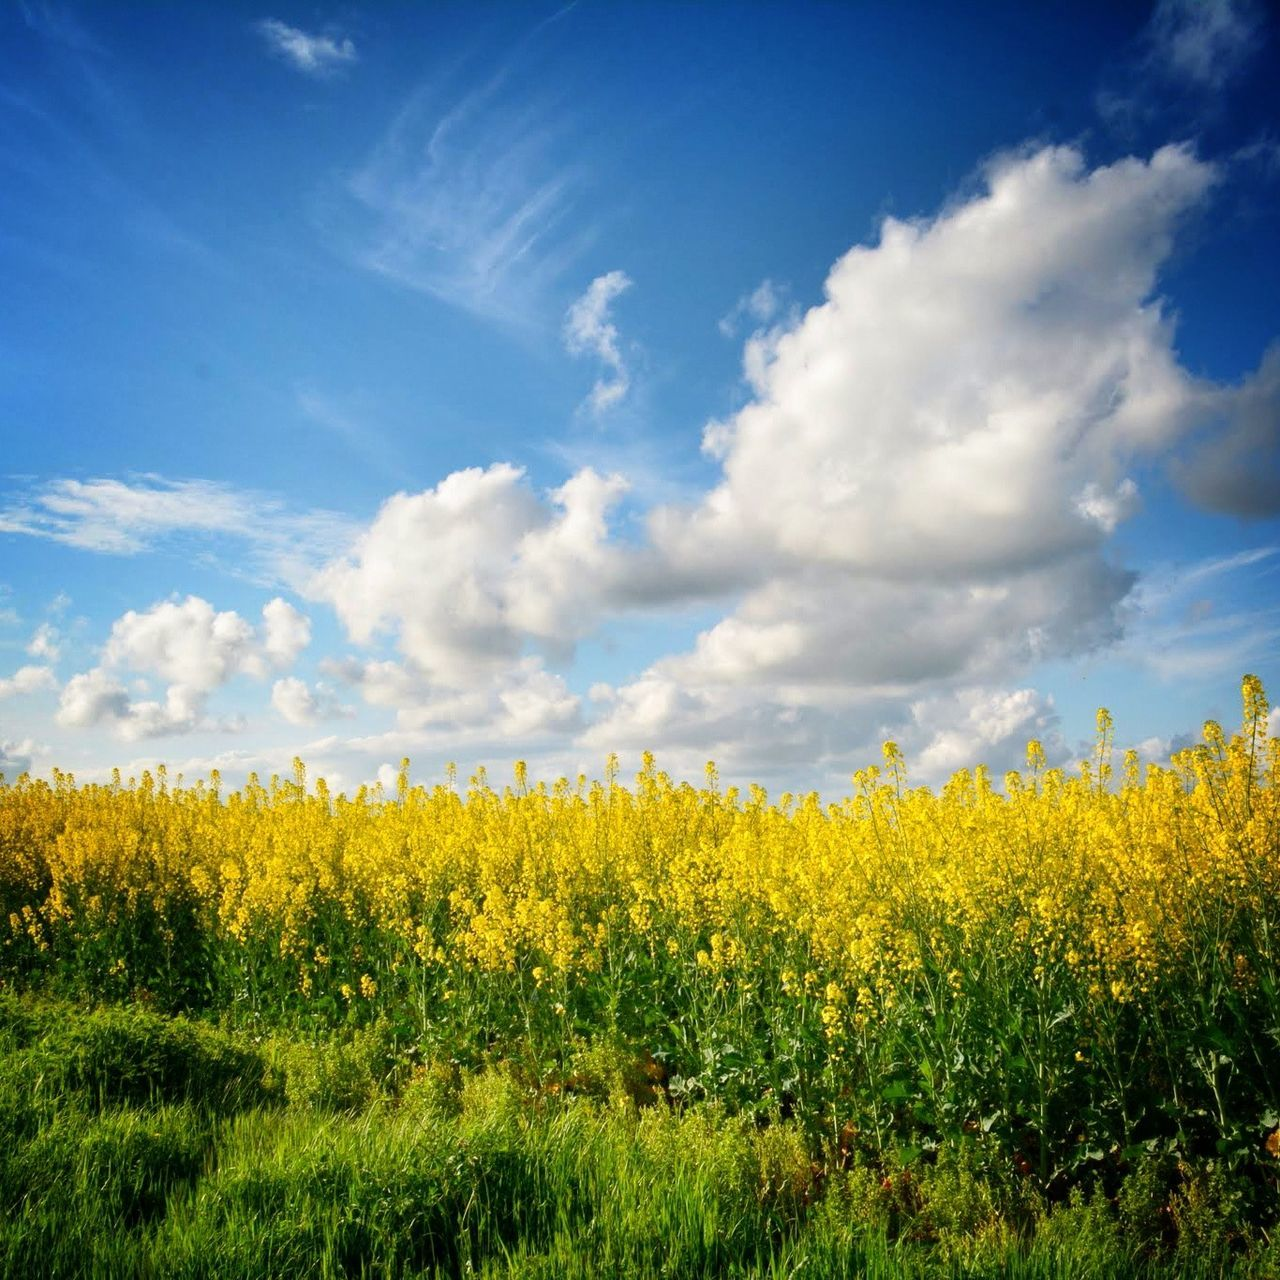 Yellow Flowers Blooming Against Sky On Field